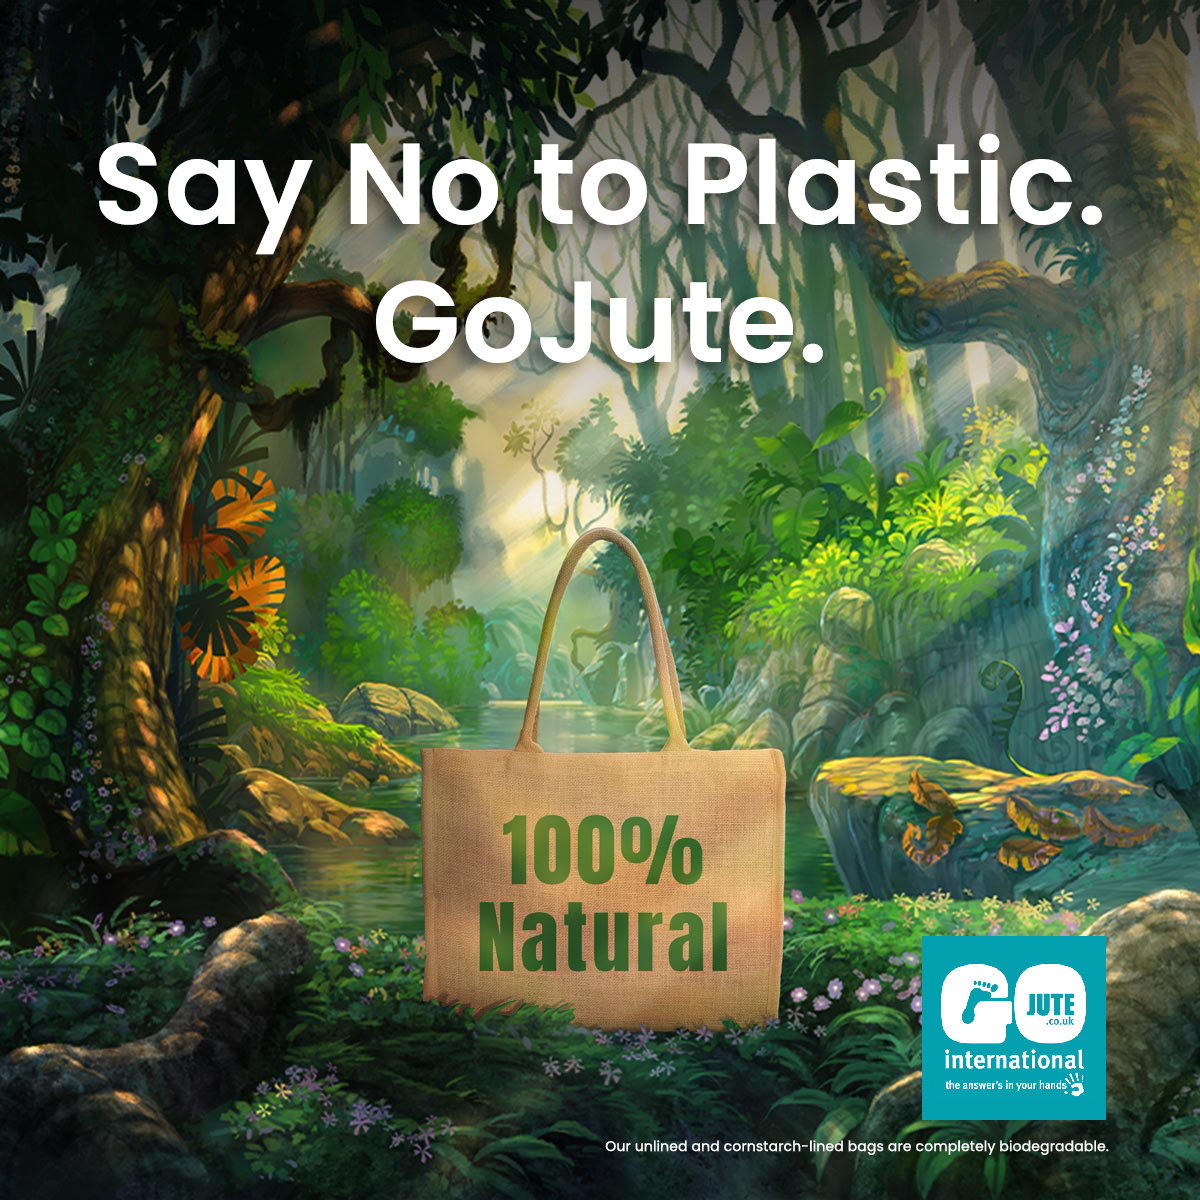 Say No to Plastic. GoJute.